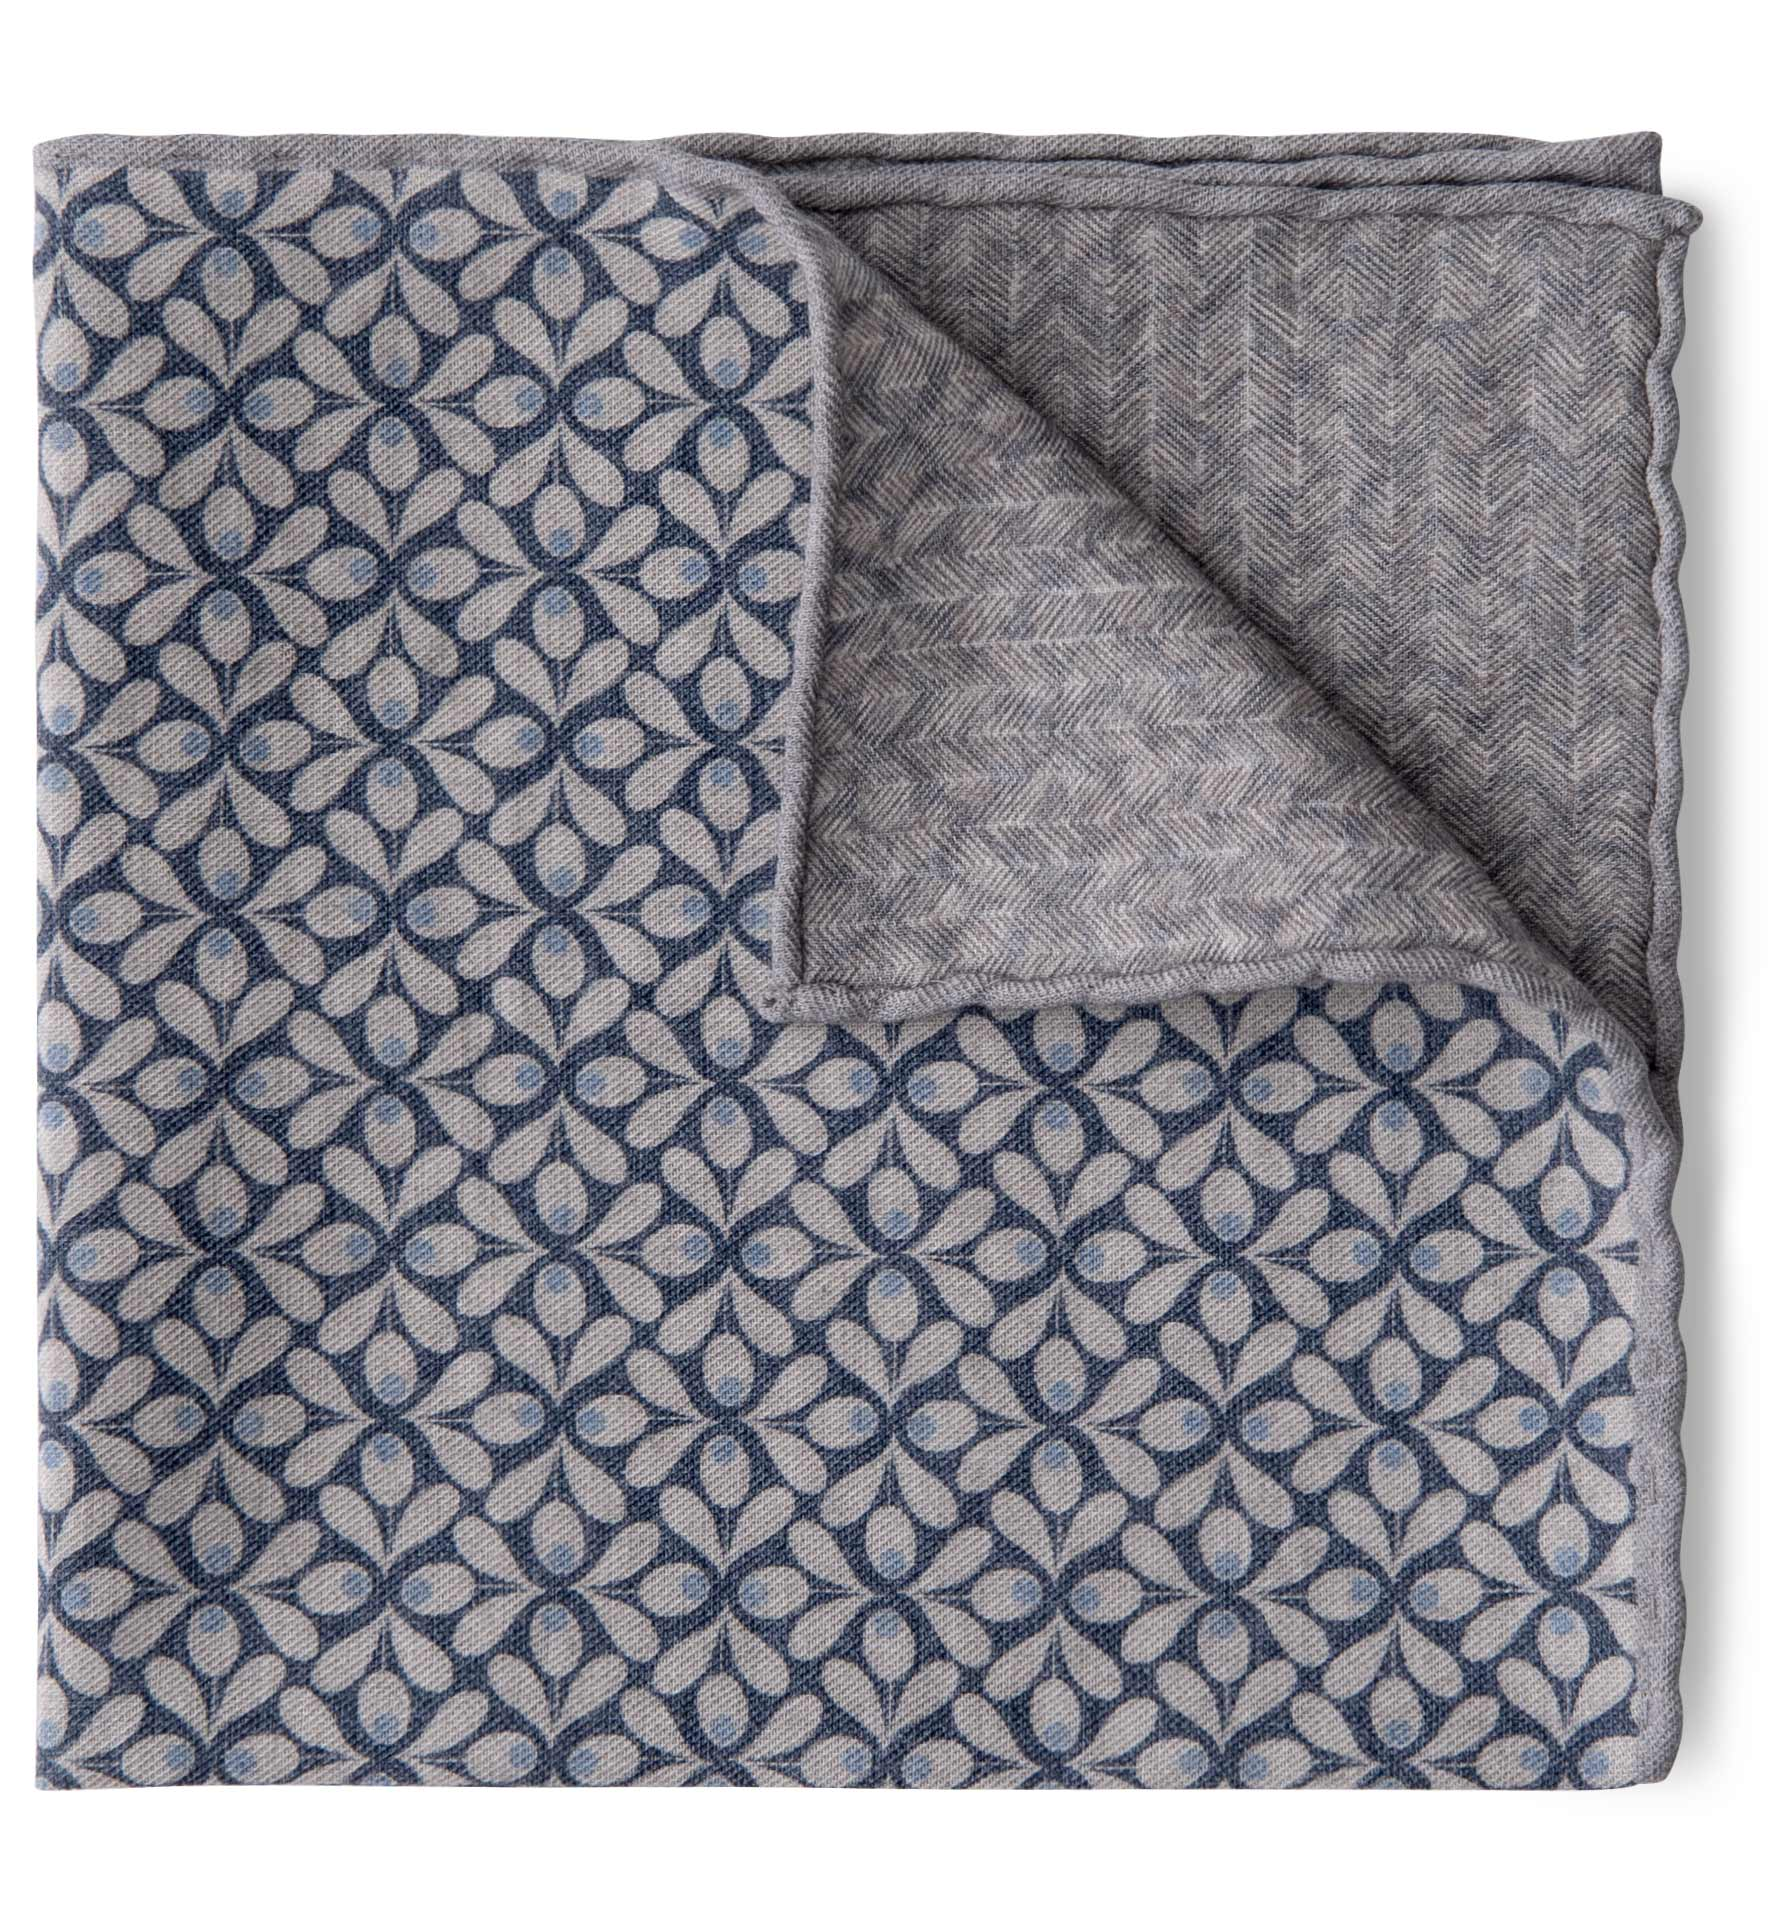 Zoom Image of Light Grey and Navy Geometric Floral Print Pocket Square